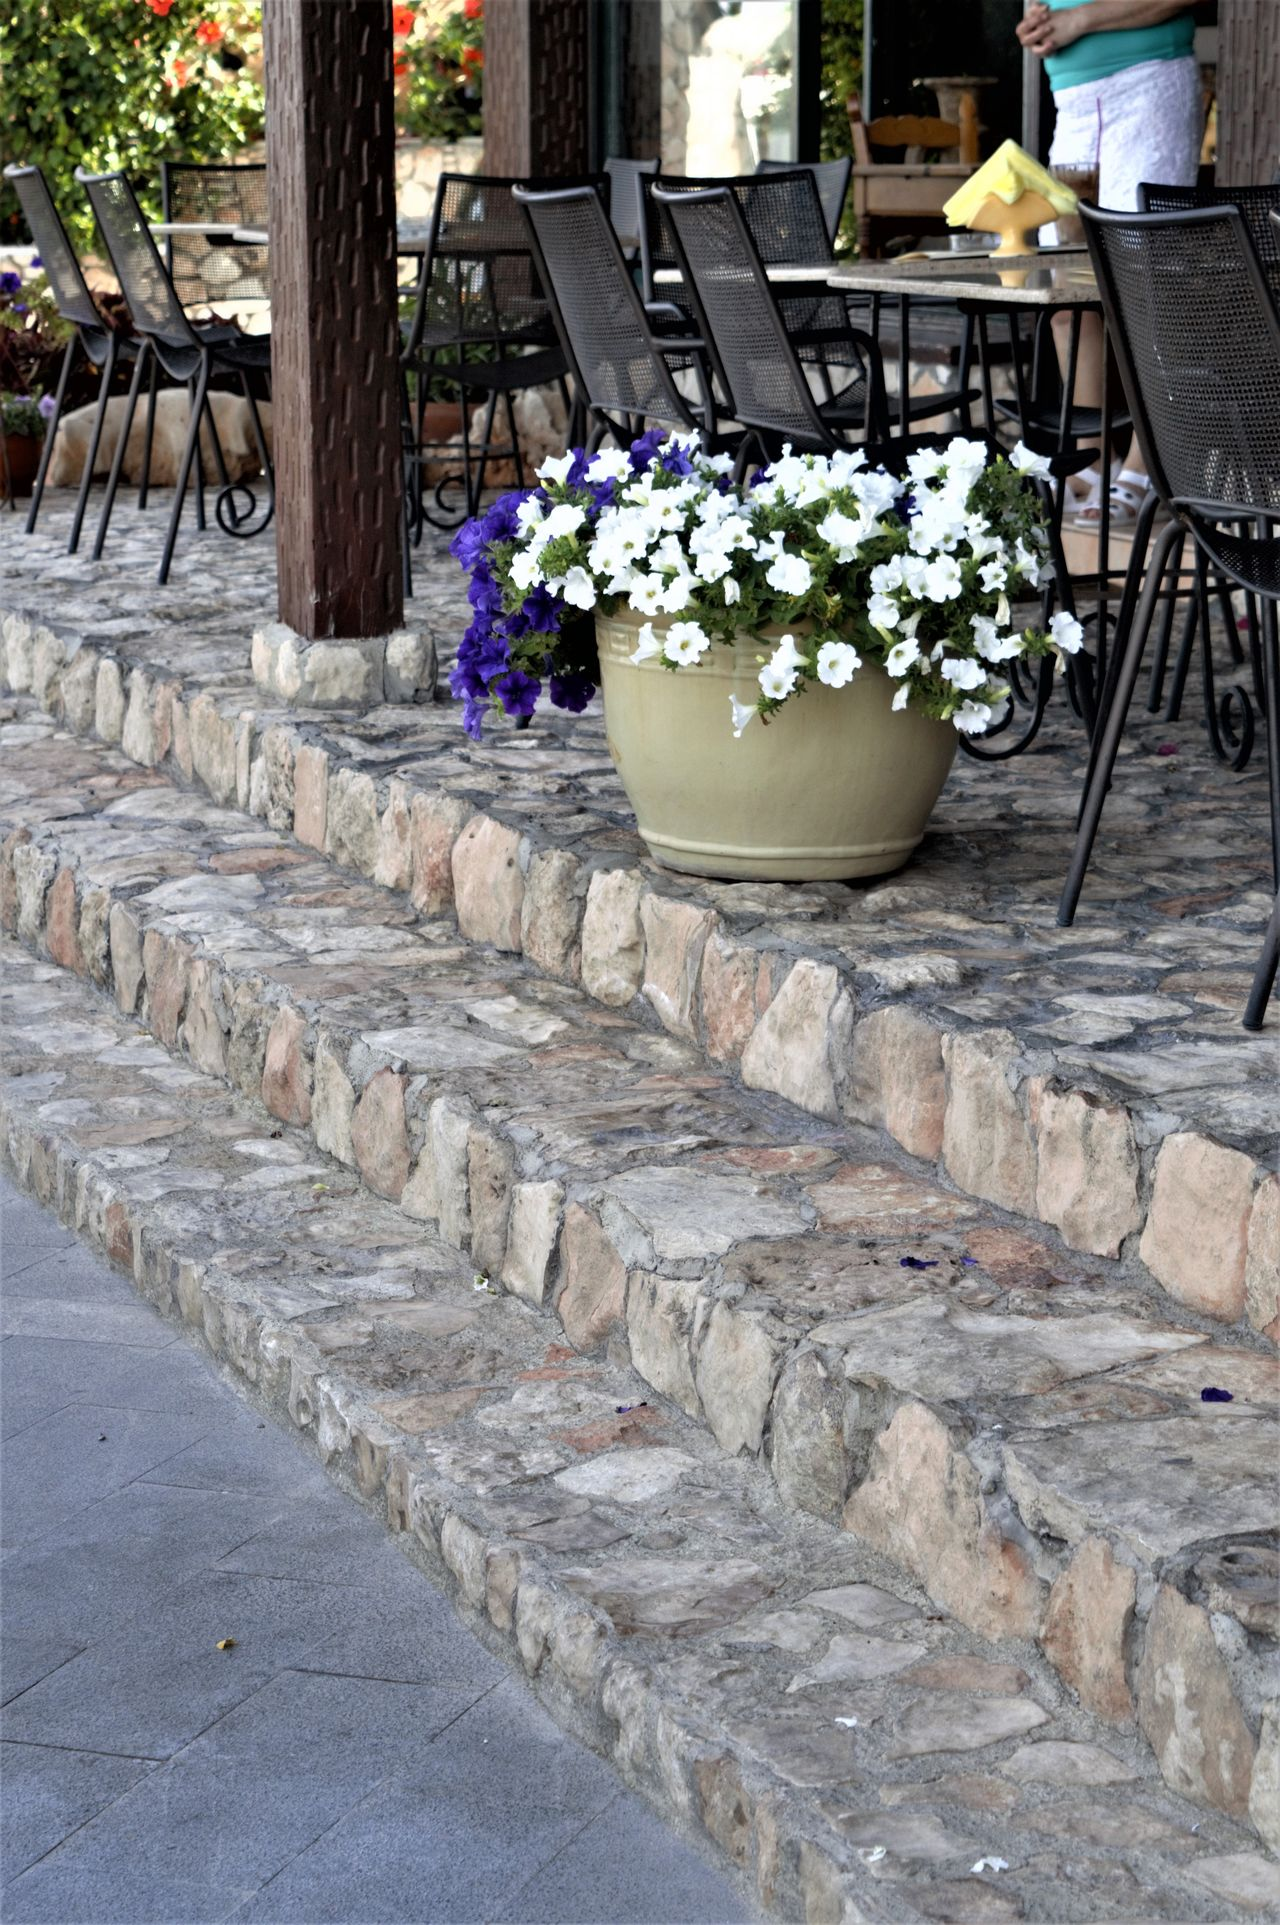 Architecture Building Exterior Built Structure Day Flower Fragility Growth Larnaka Cyprus Nature No People Outdoors Plant Potted Plant